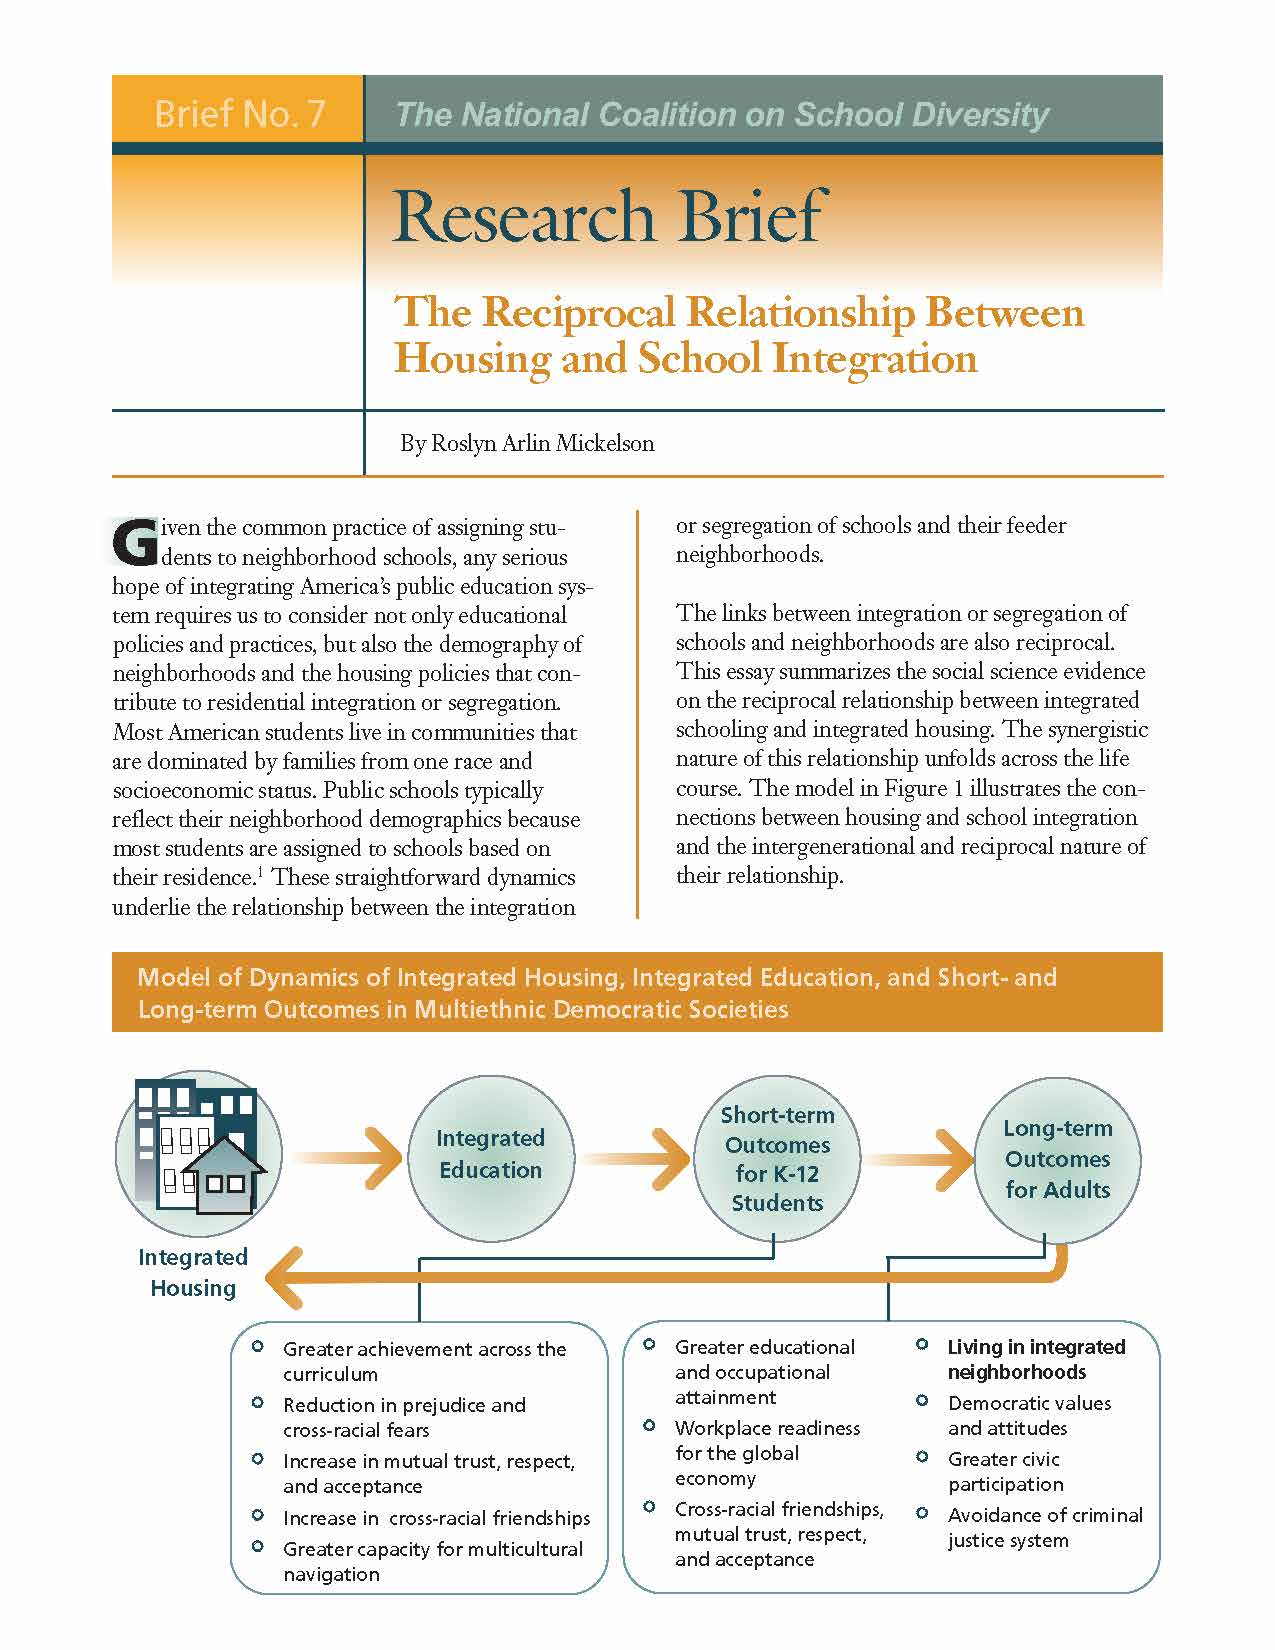 Research Briefs - The National Coalition on School Diversity